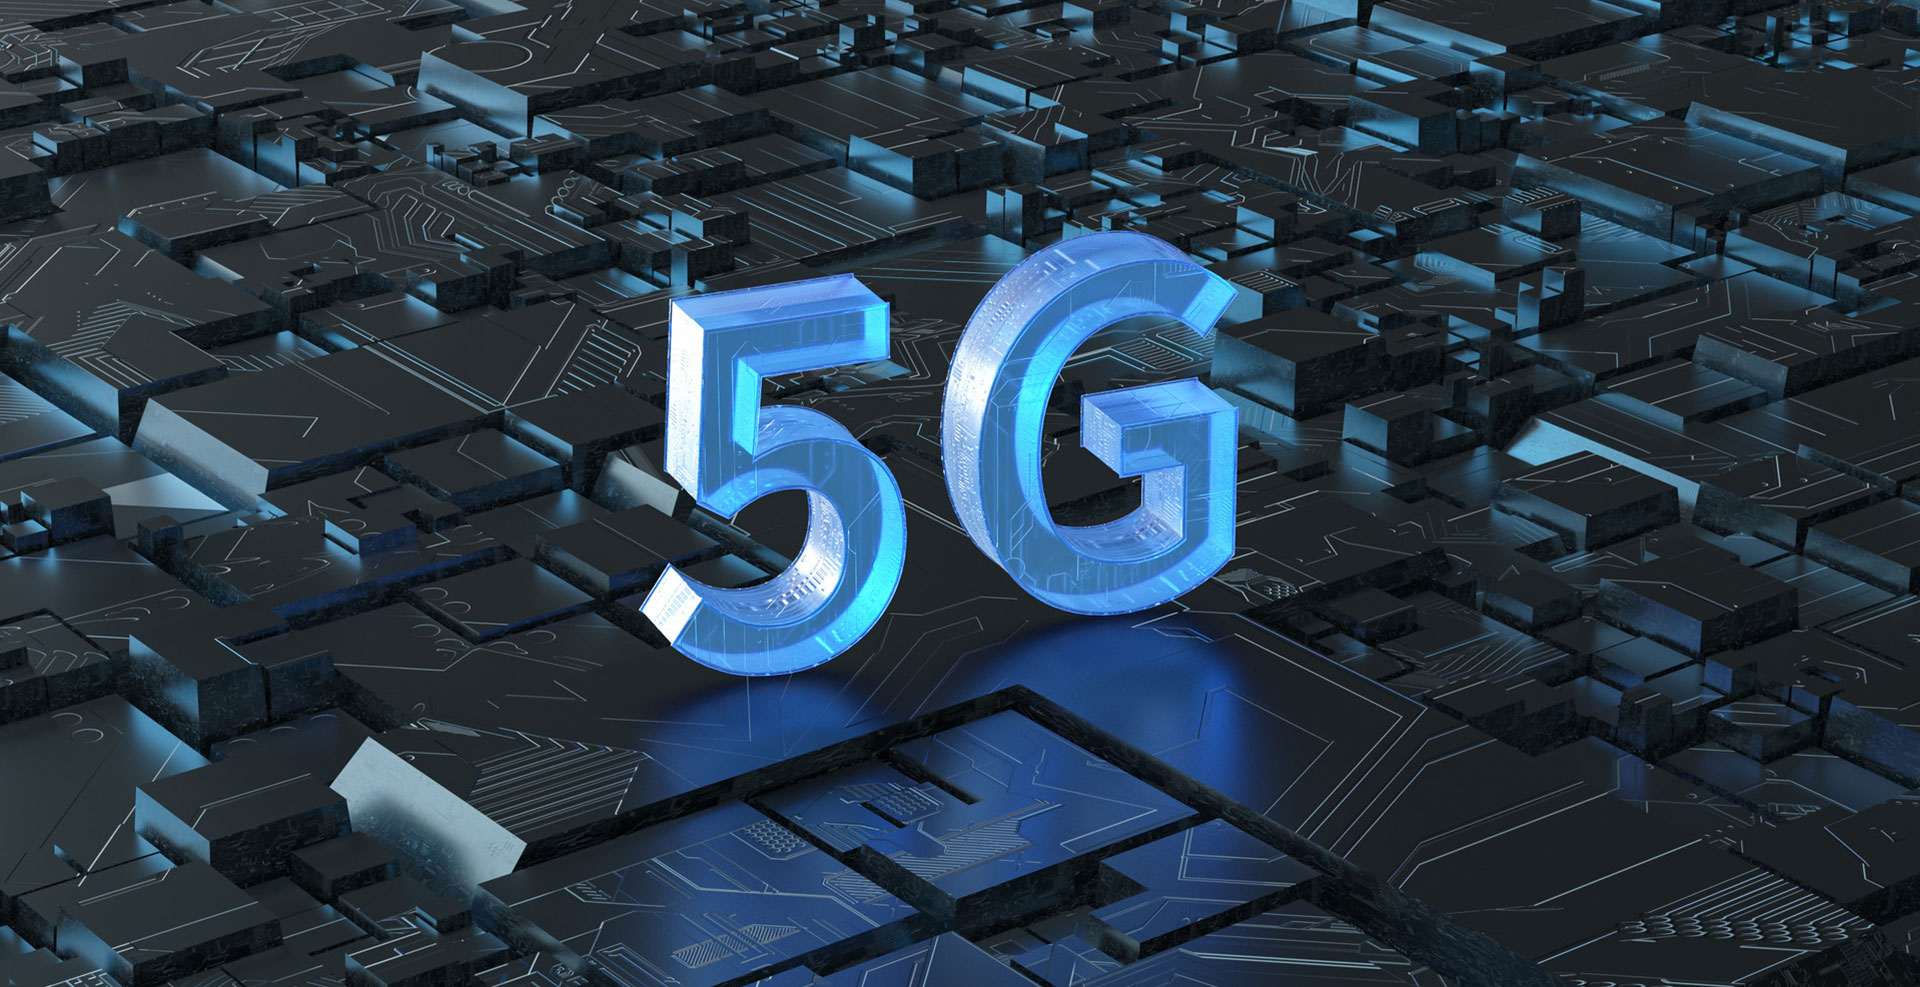 5G is inseparable from the construction of large-scale data centers